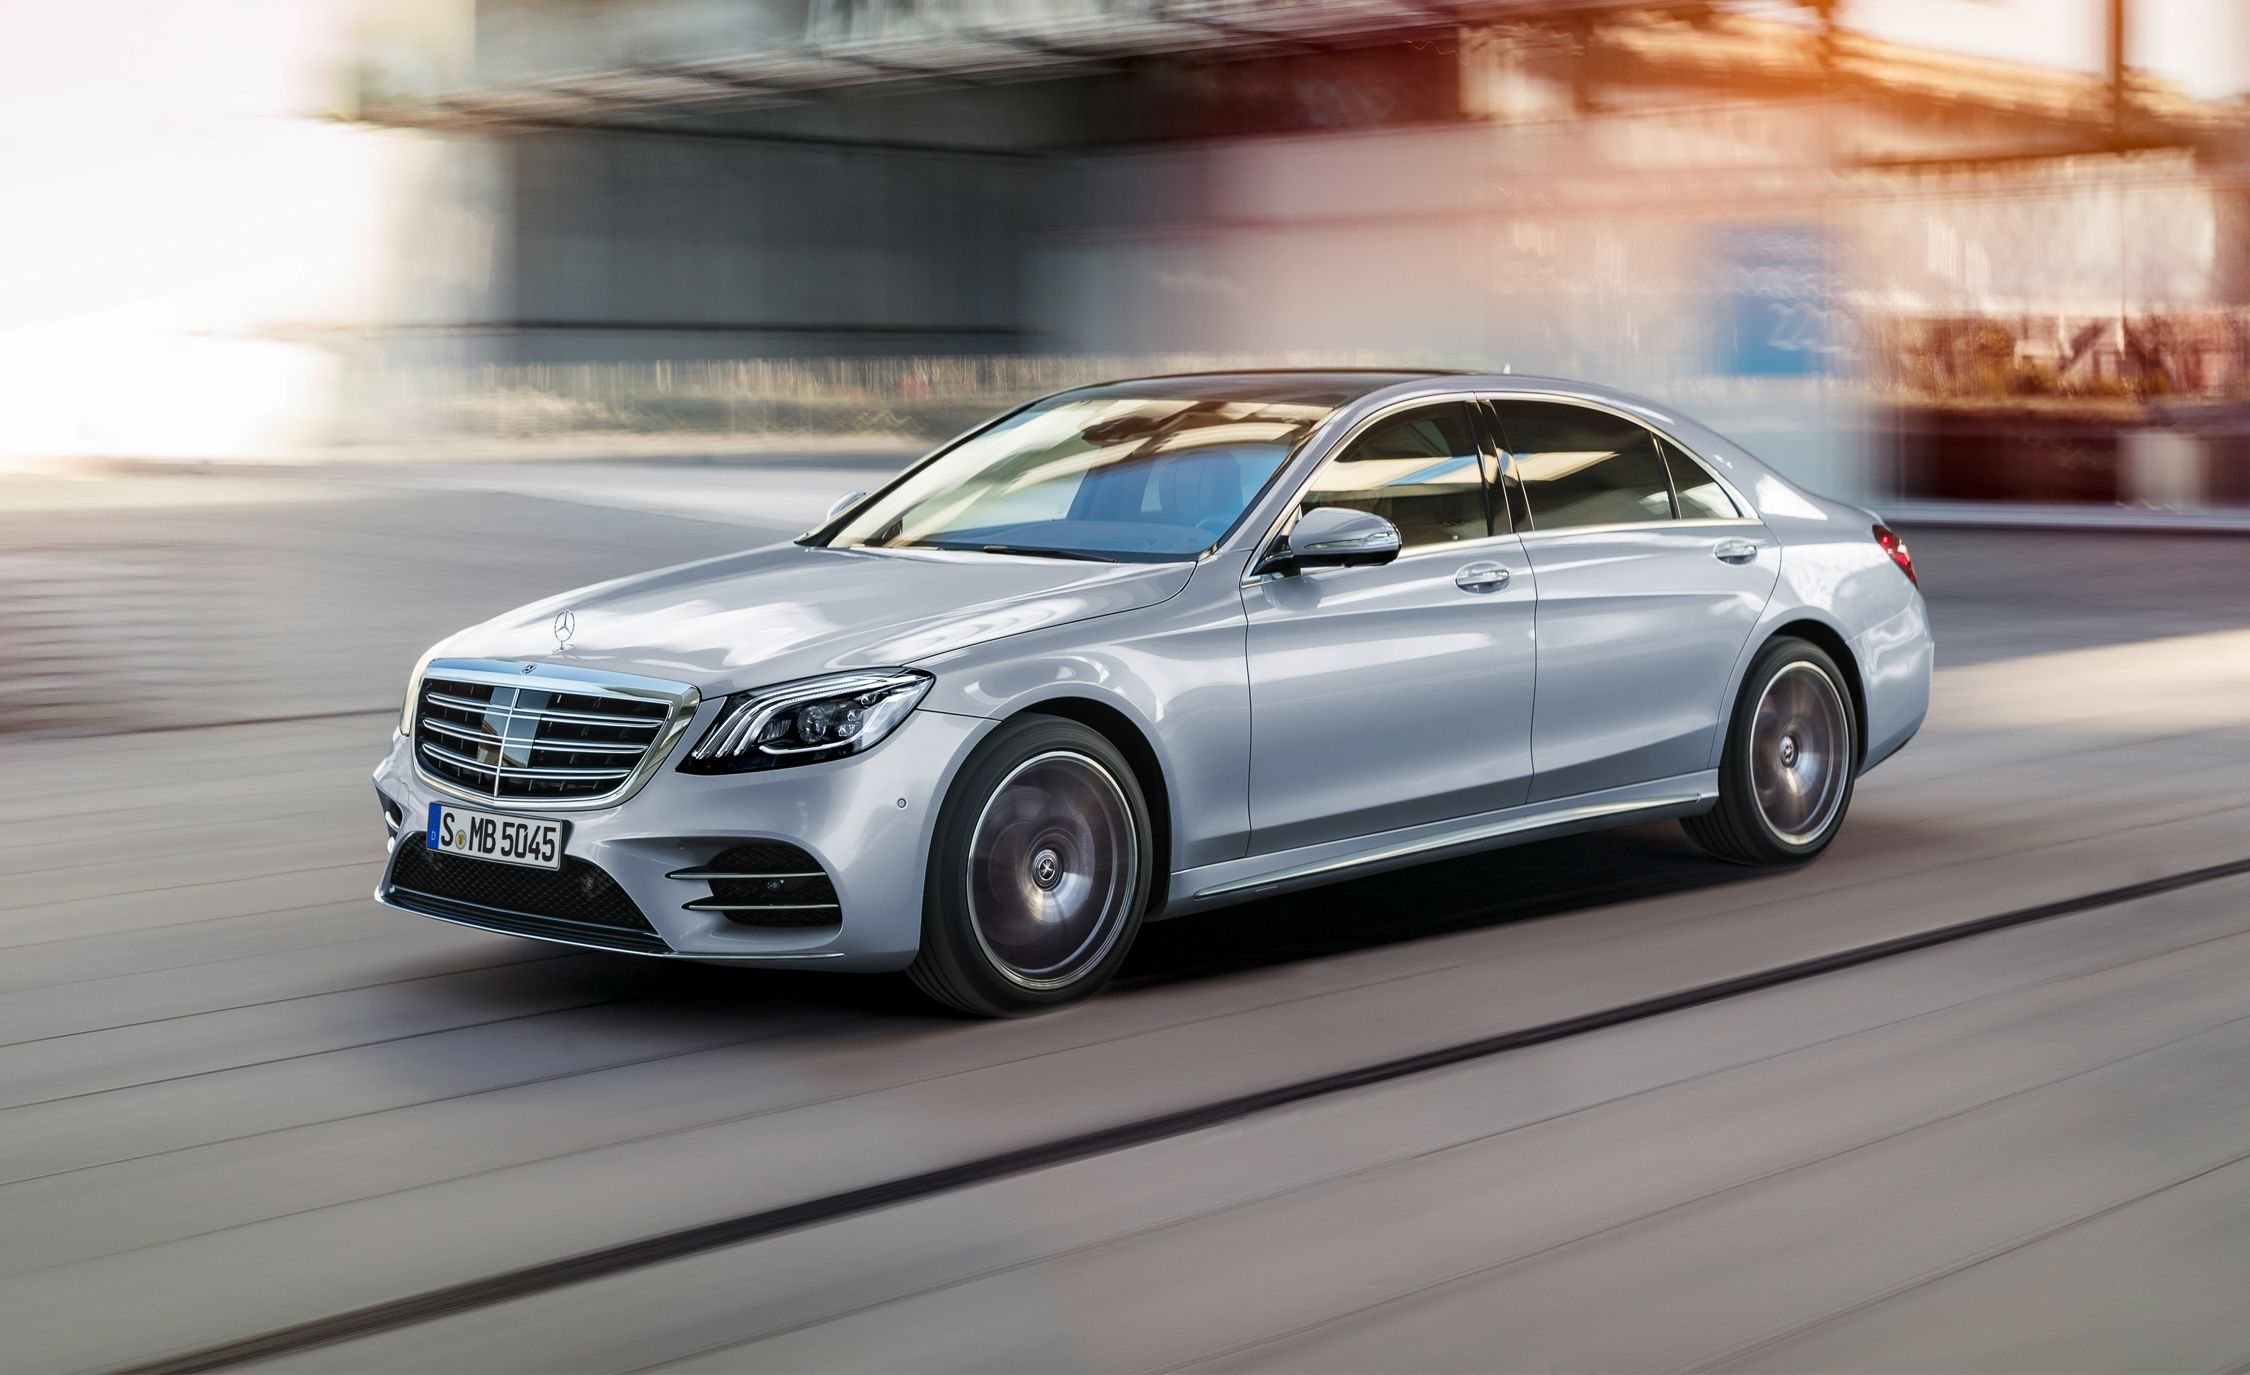 2018 Mercedes Benz S550 Review And Specs >> 2018 Mercedes Benz S Class Sedan Lineup Detailed From Top To